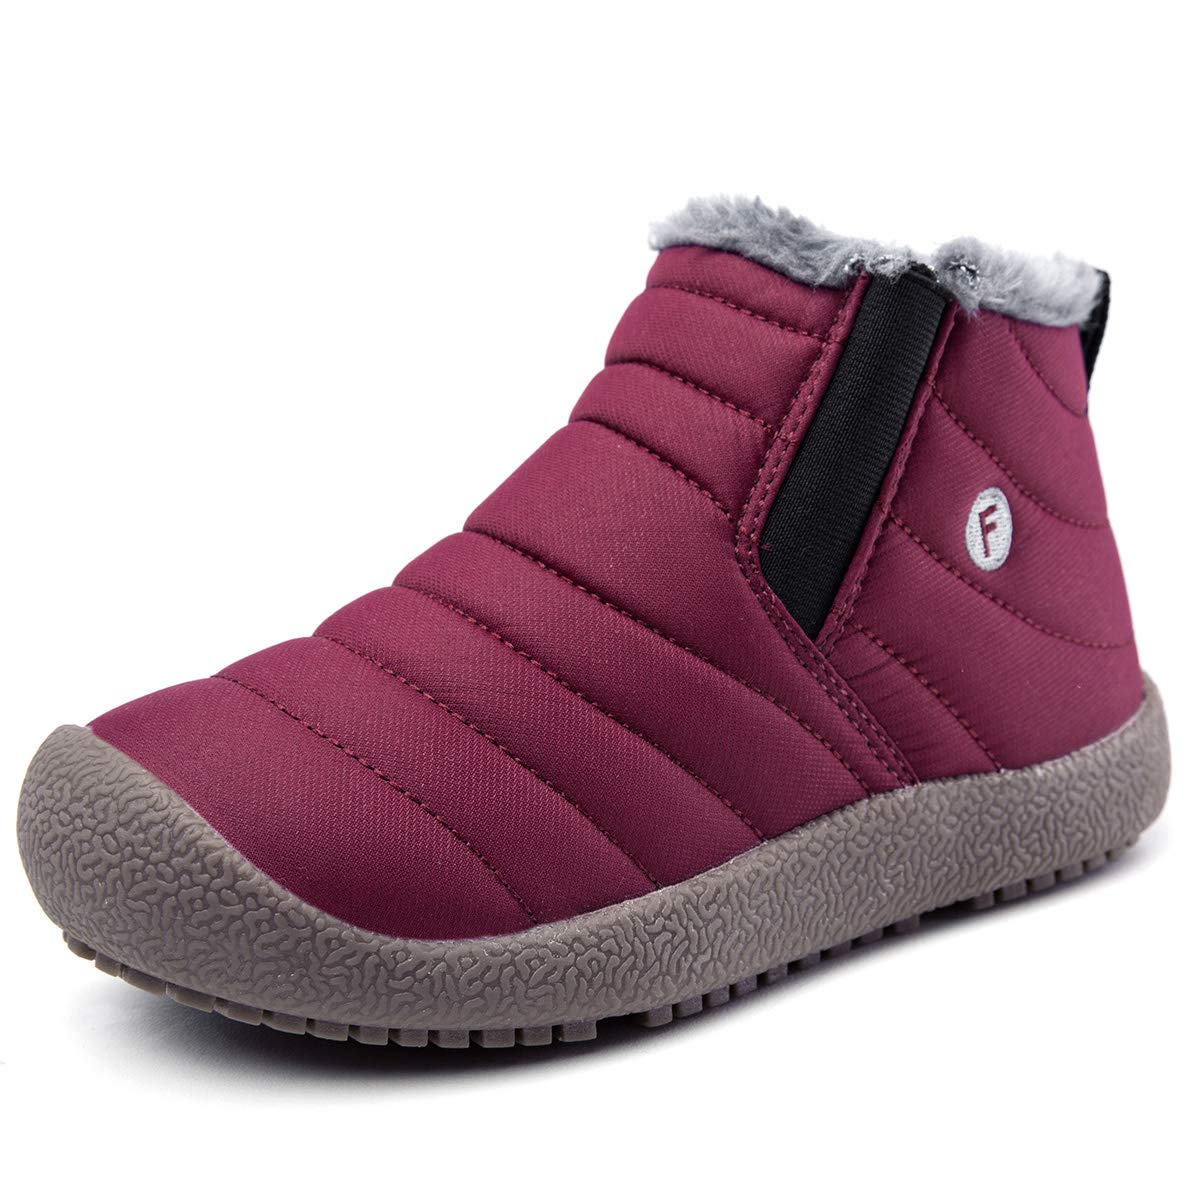 EXEBLUE Boys Girls Water-Resistant Winter Snow Boots, Unisex Kids Ankle Booties with Fur Lining for Outdoor Red Wine